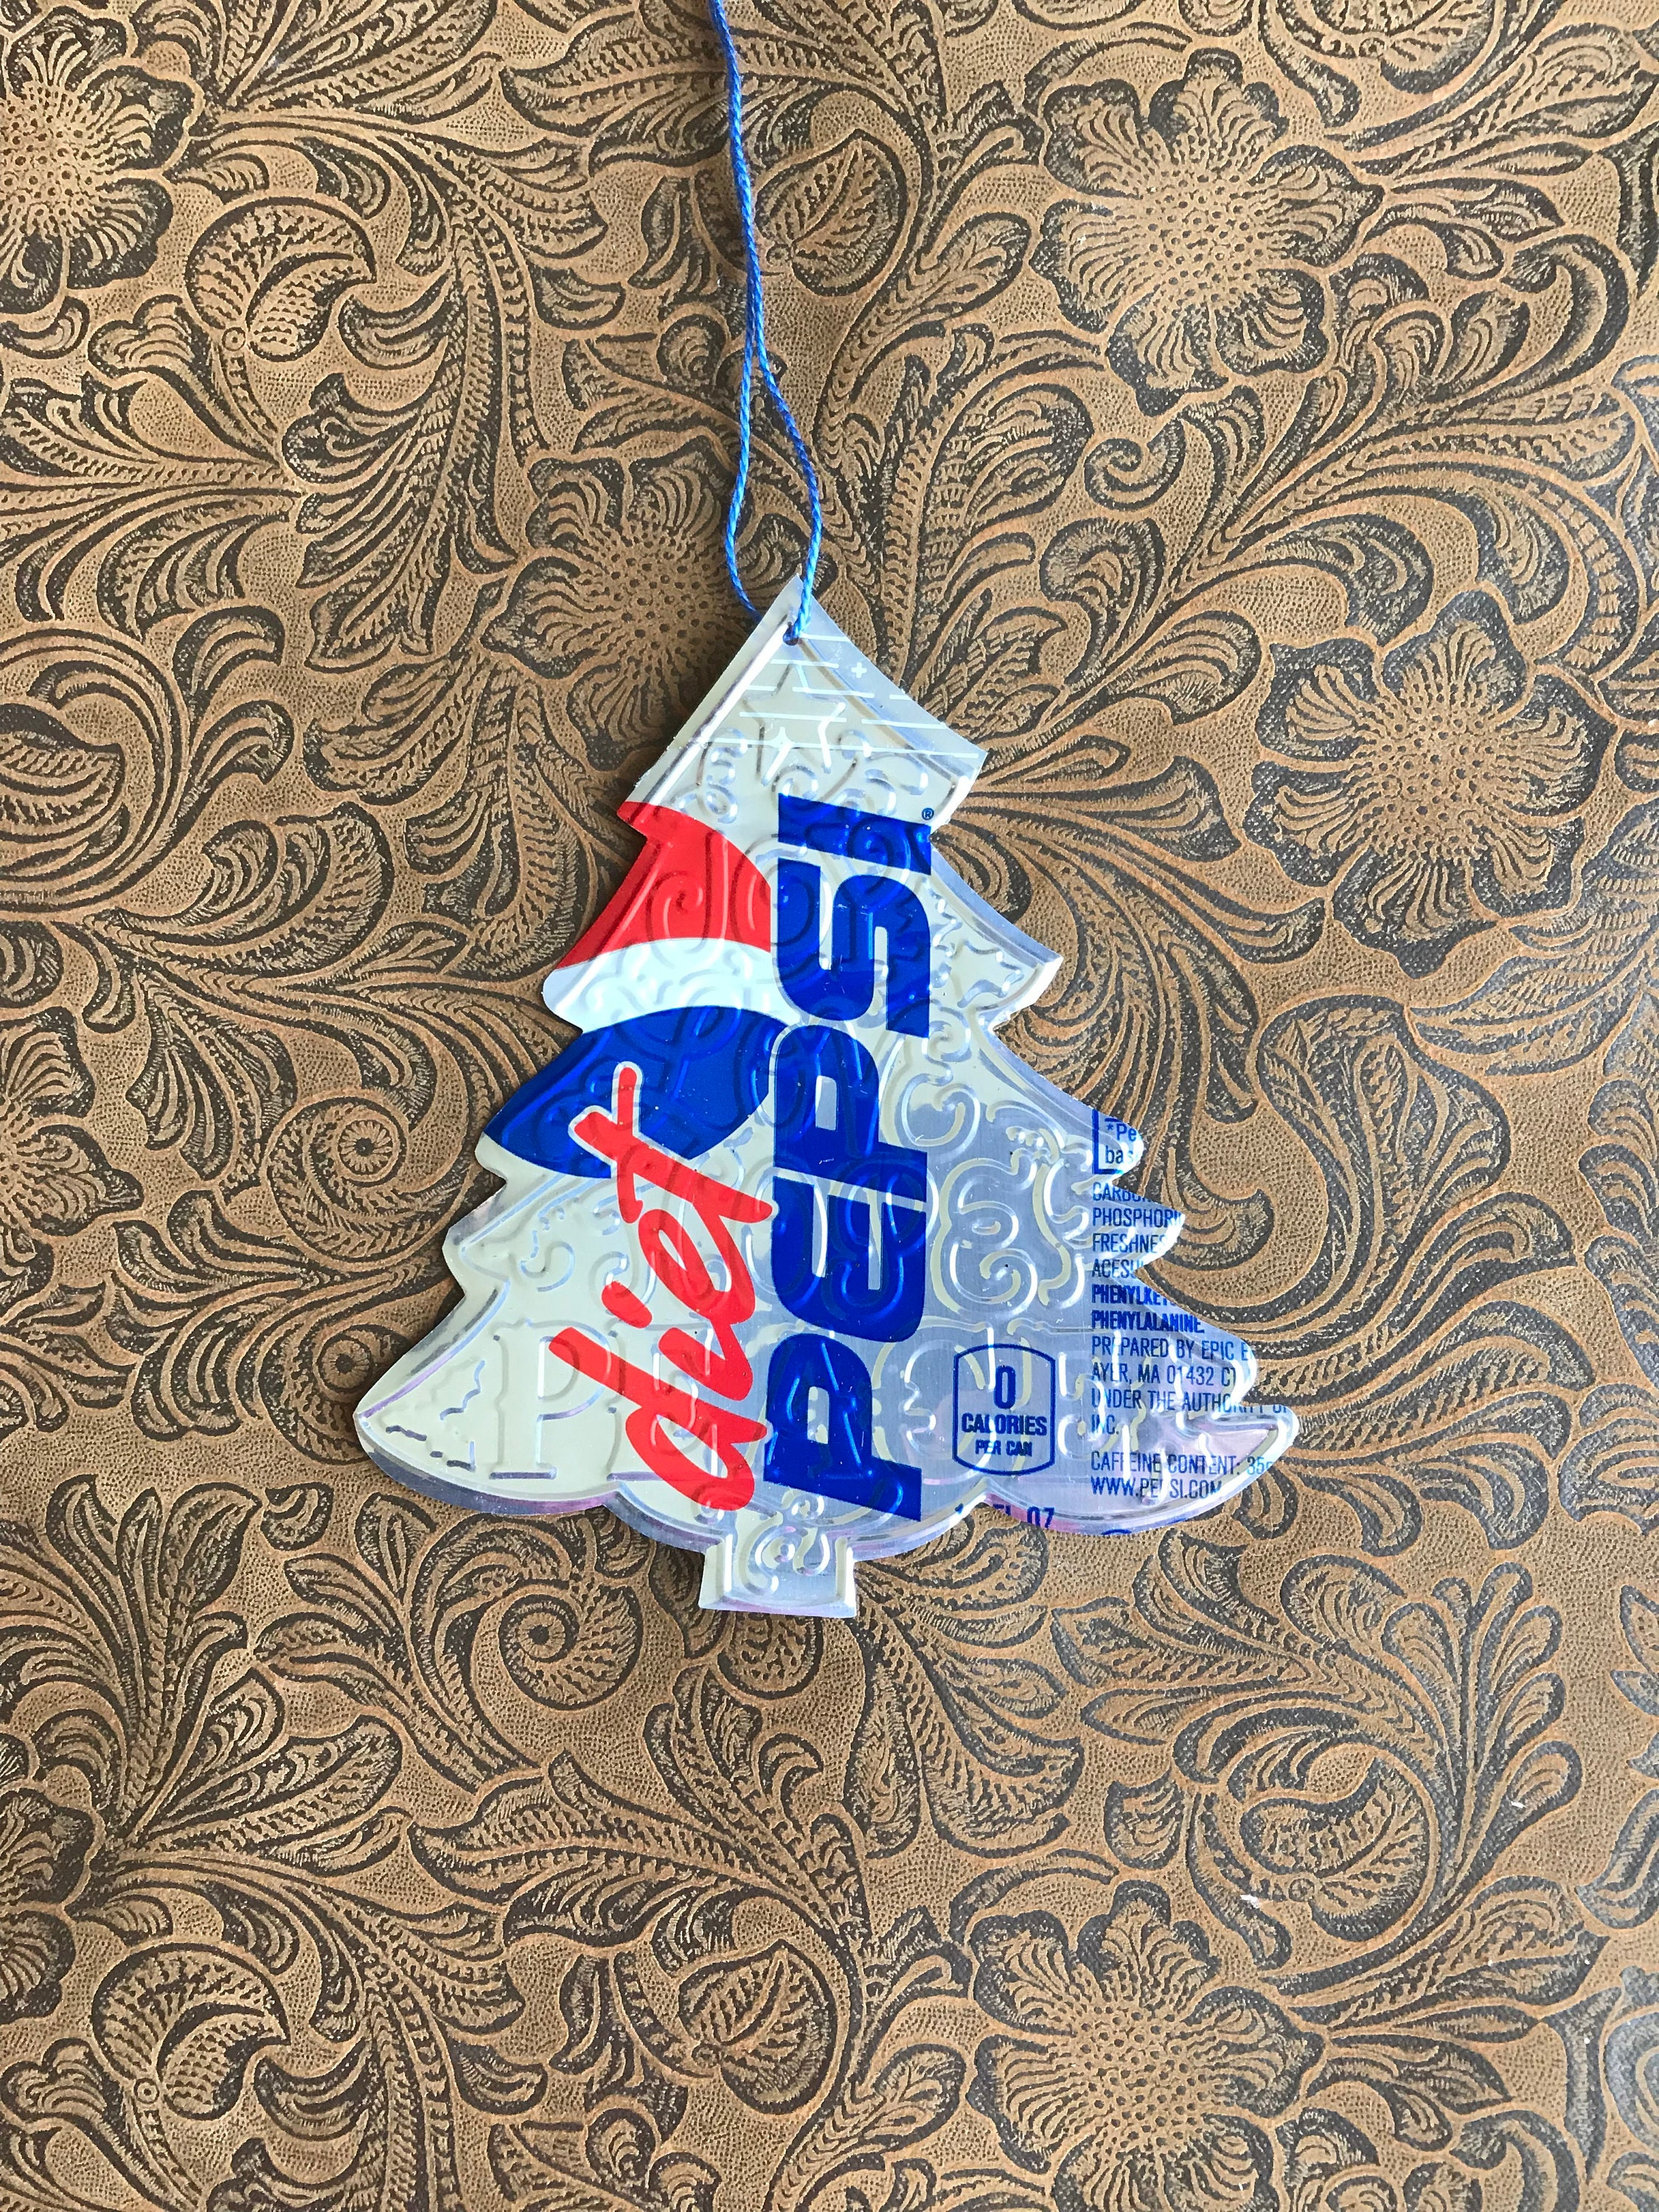 Christmas Tree Ornament using Diet Pepsi Soda Can Soda Can | Etsy